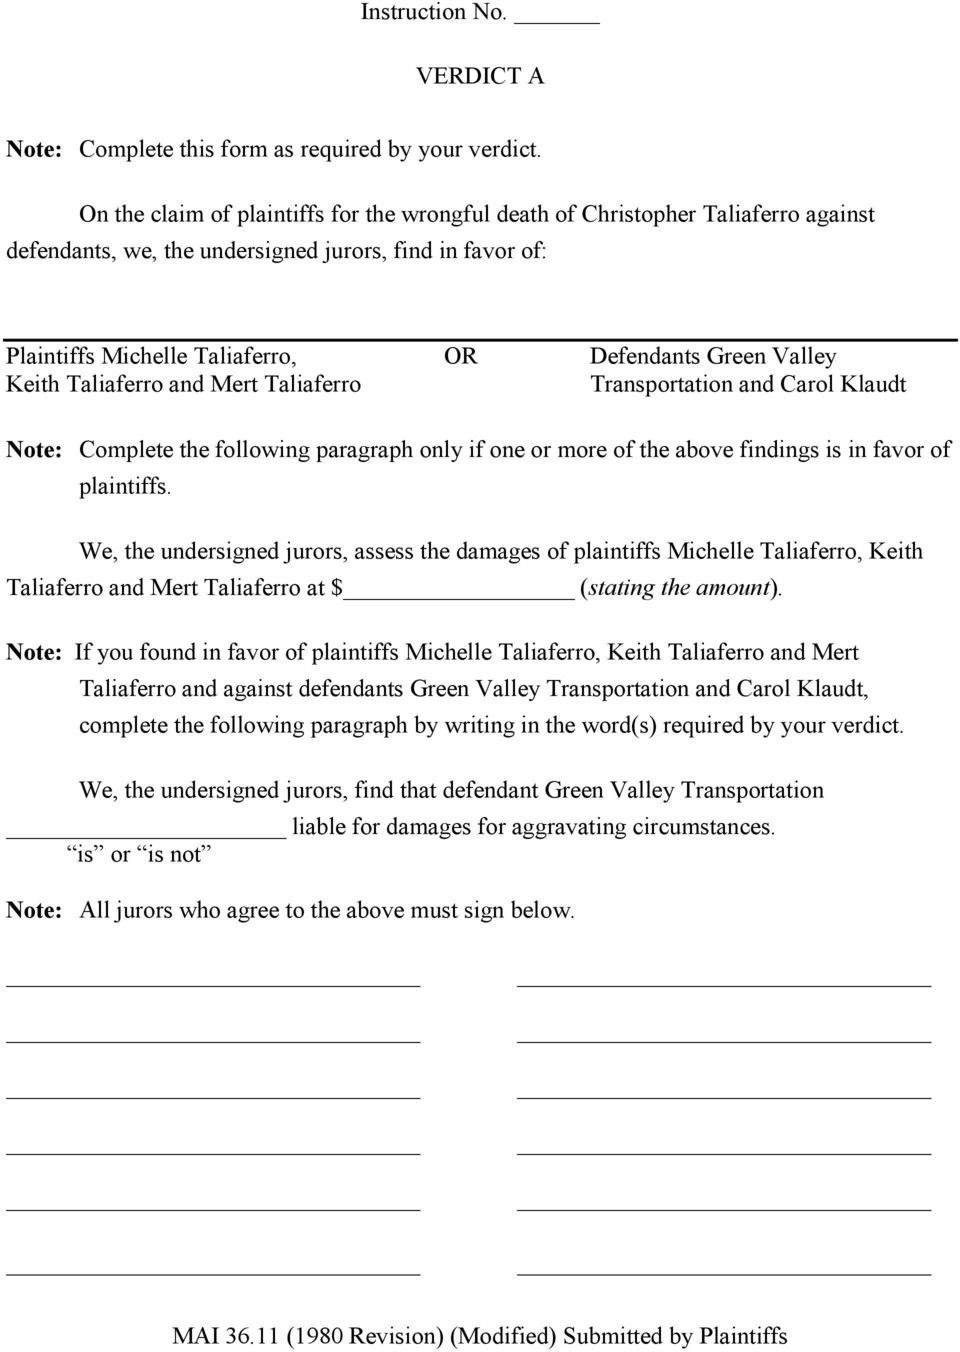 Valley Keith Taliaferro and Mert Taliaferro Transportation and Carol Klaudt Note: Complete the following paragraph only if one or more of the above findings is in favor of plaintiffs.